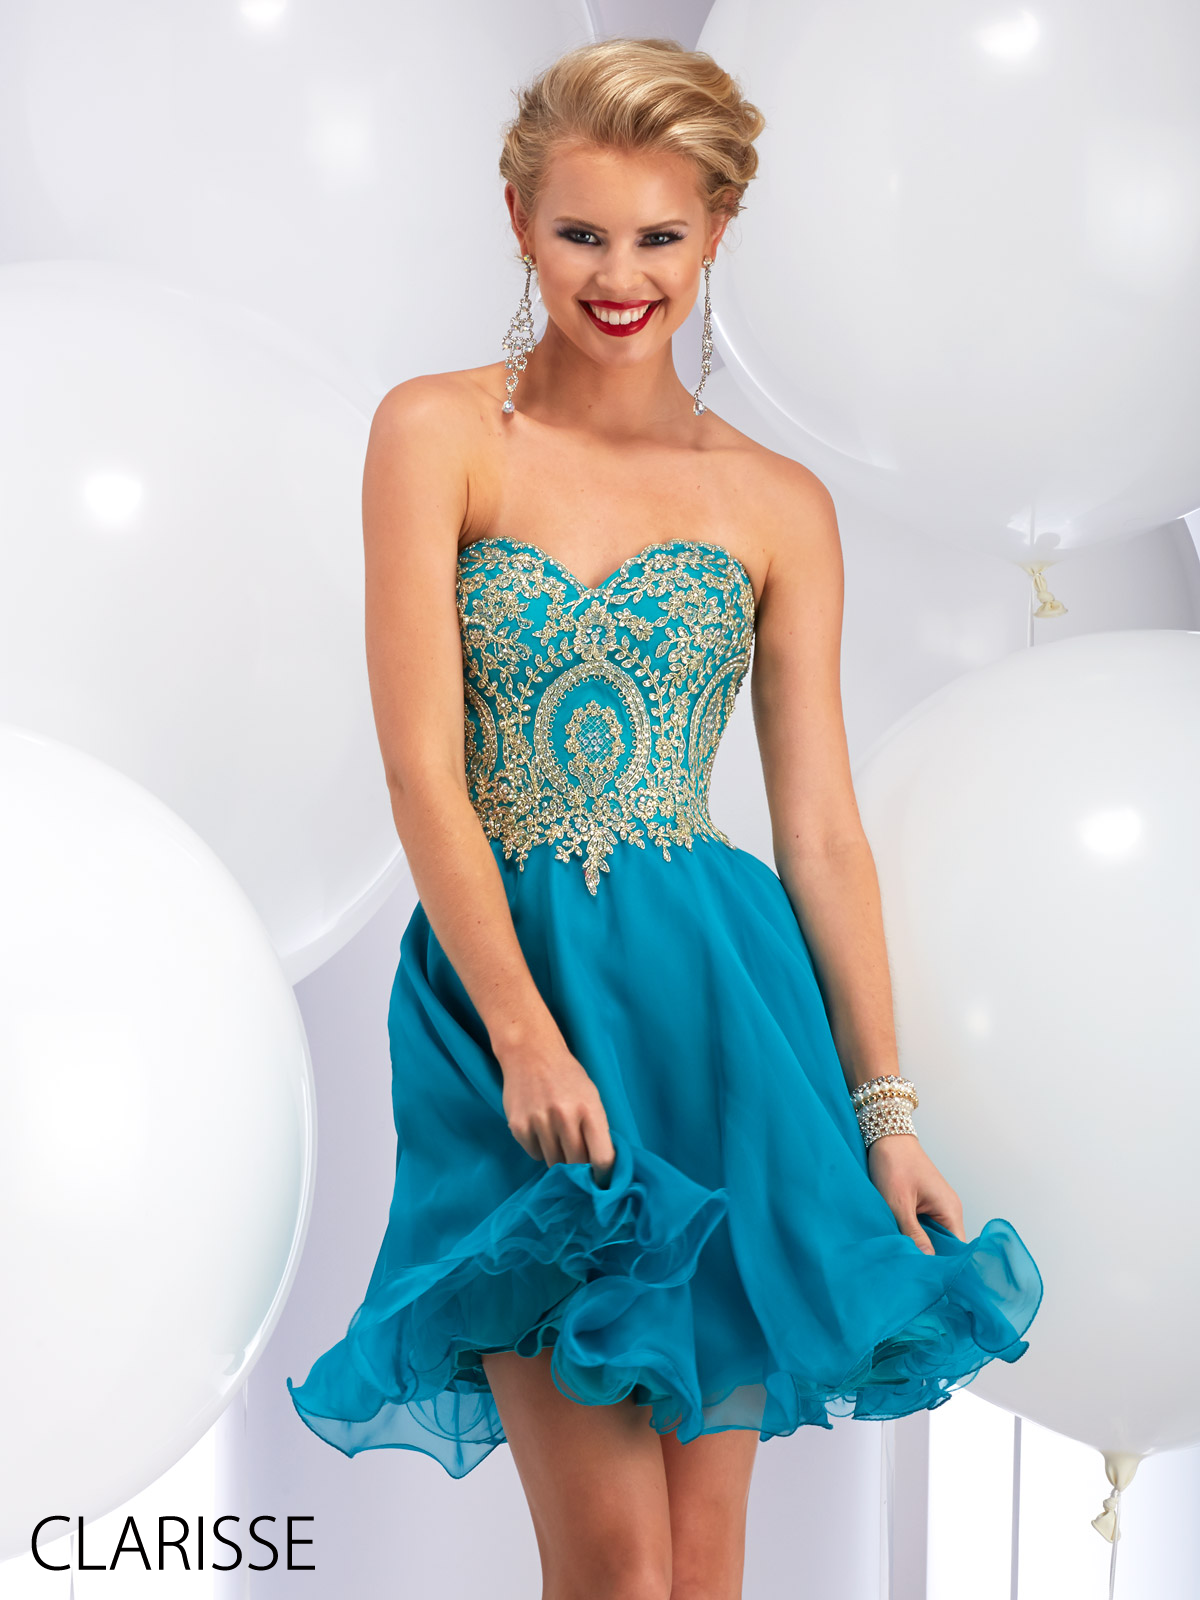 Old Fashioned Prom Dresses Madison Wi Gift - Colorful Wedding Dress ...